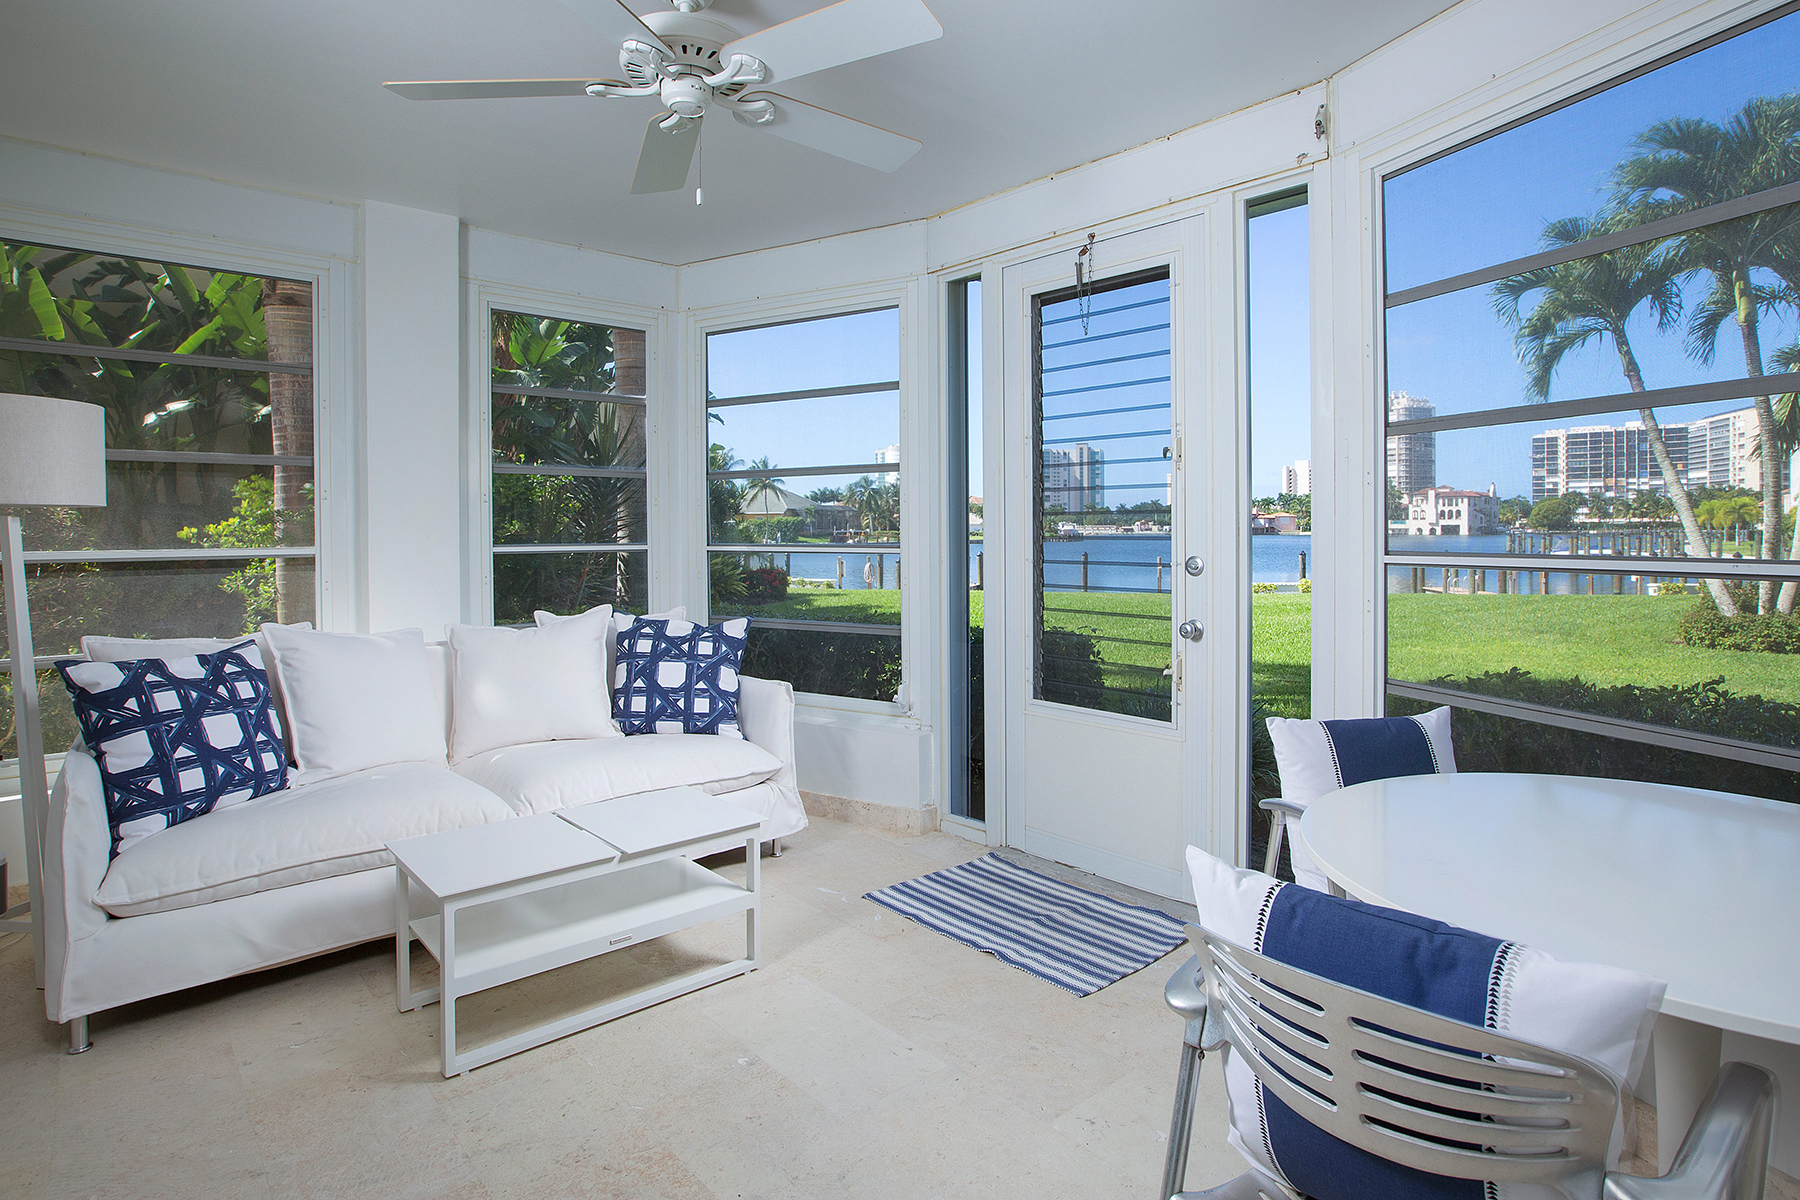 Condominio por un Venta en PARK SHORE - COLONY GARDENS 400 Park Shore Dr Unit 100 Naples, Florida, 34103 Estados Unidos